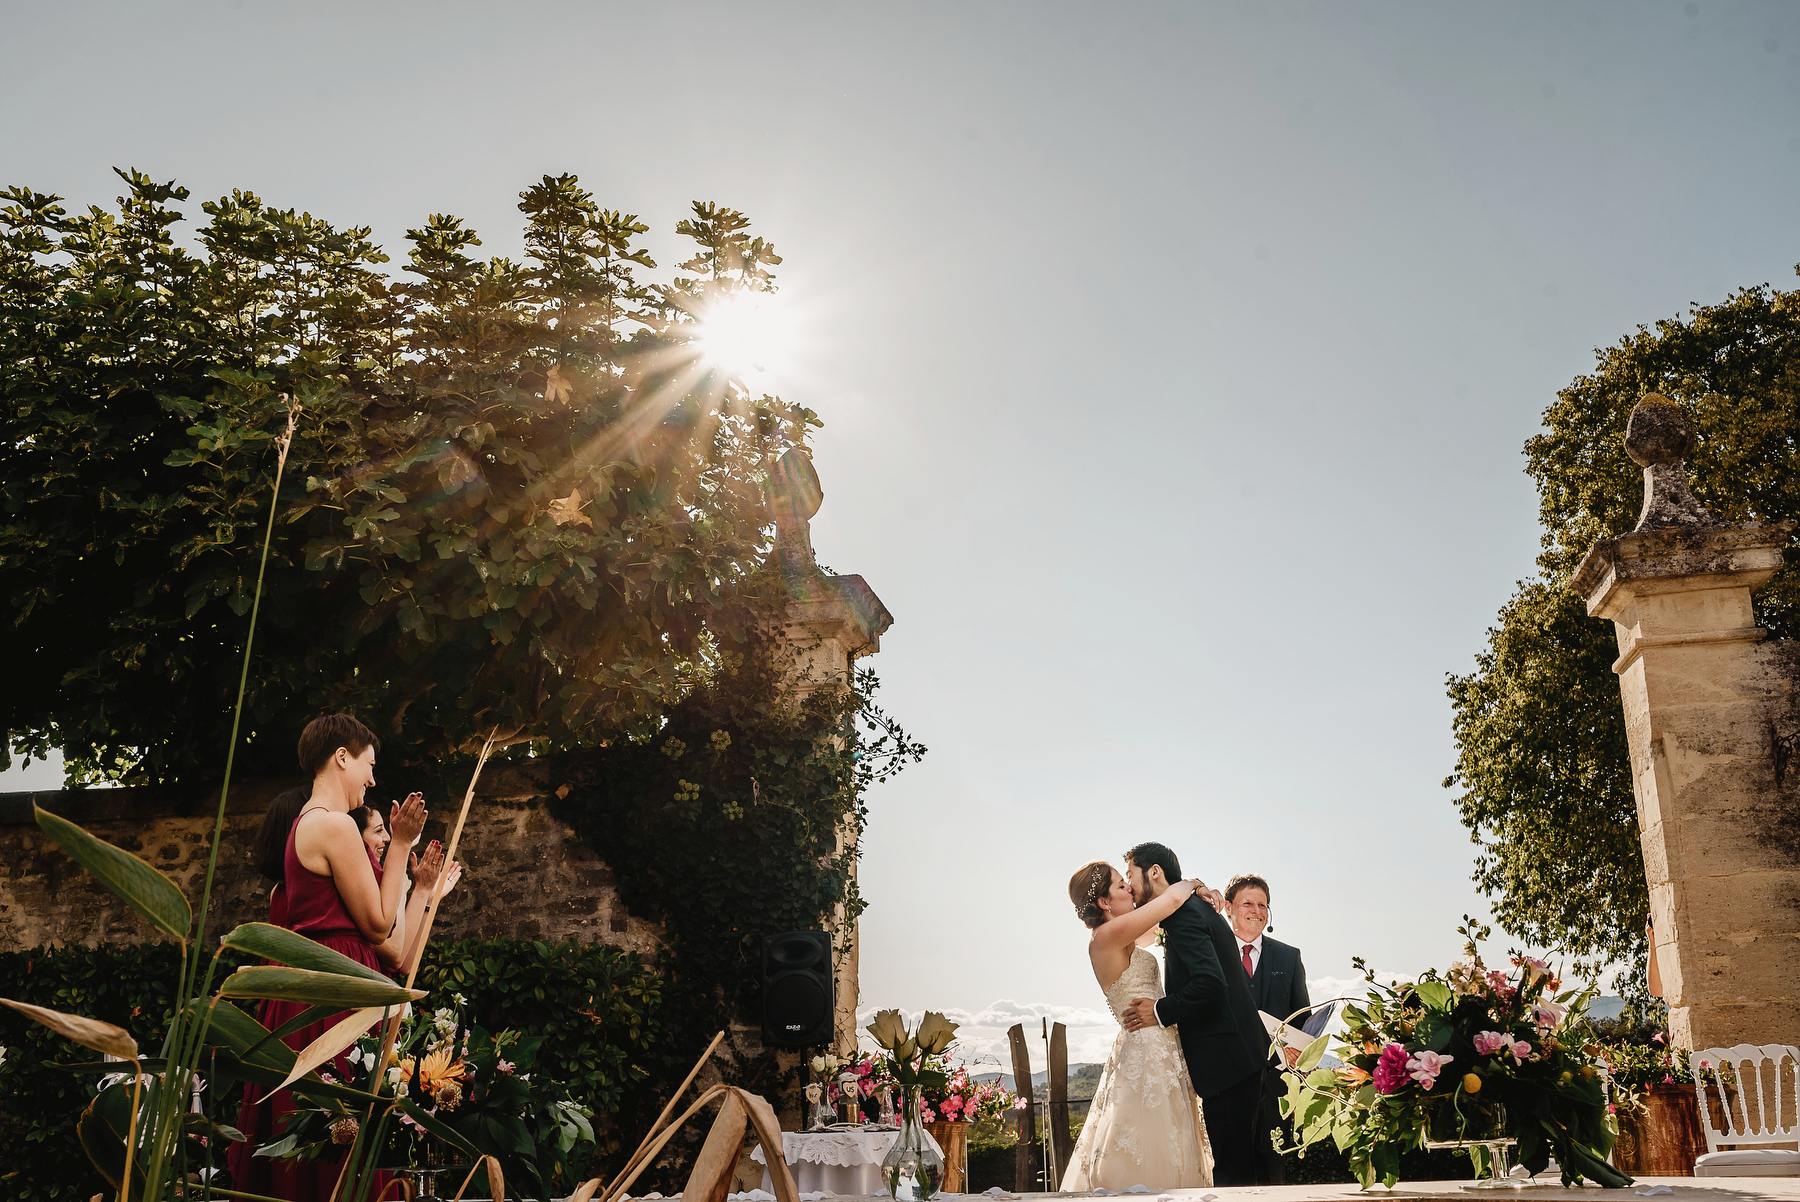 Domaine St Germain Montpellier Wedding Photographer